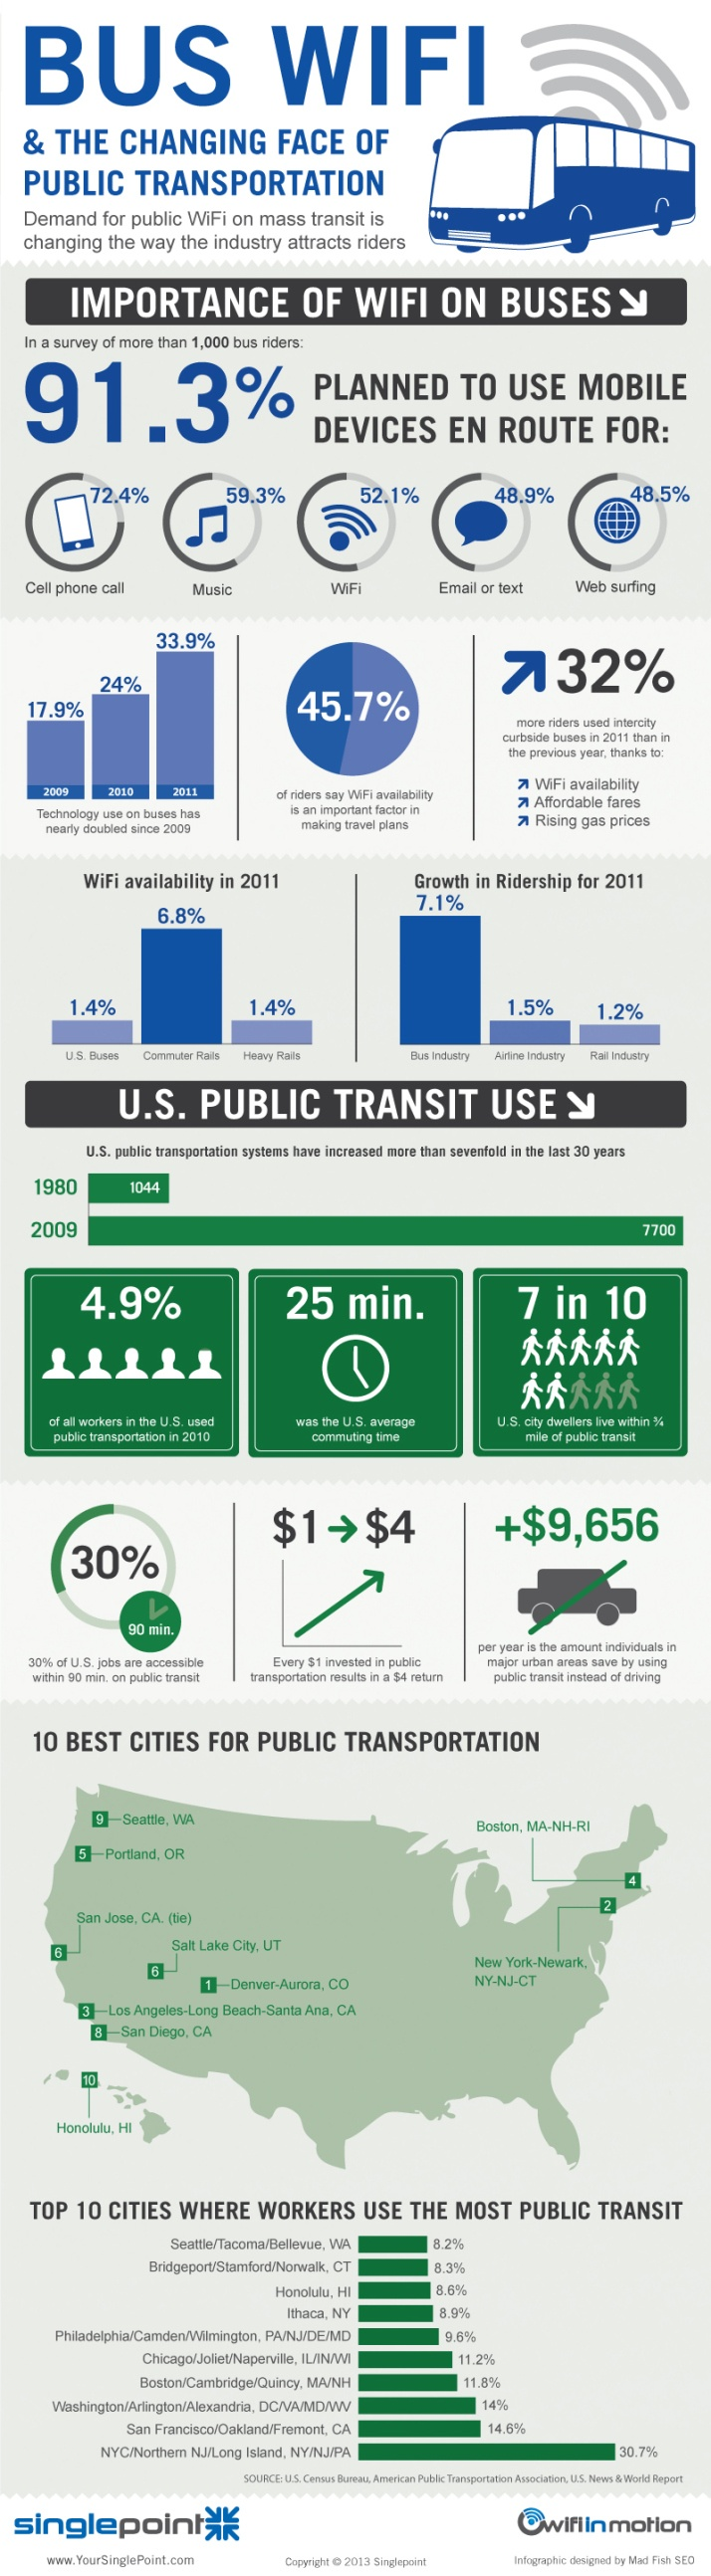 Bus WIFI and the changing face of public transportation #infografia #infographic